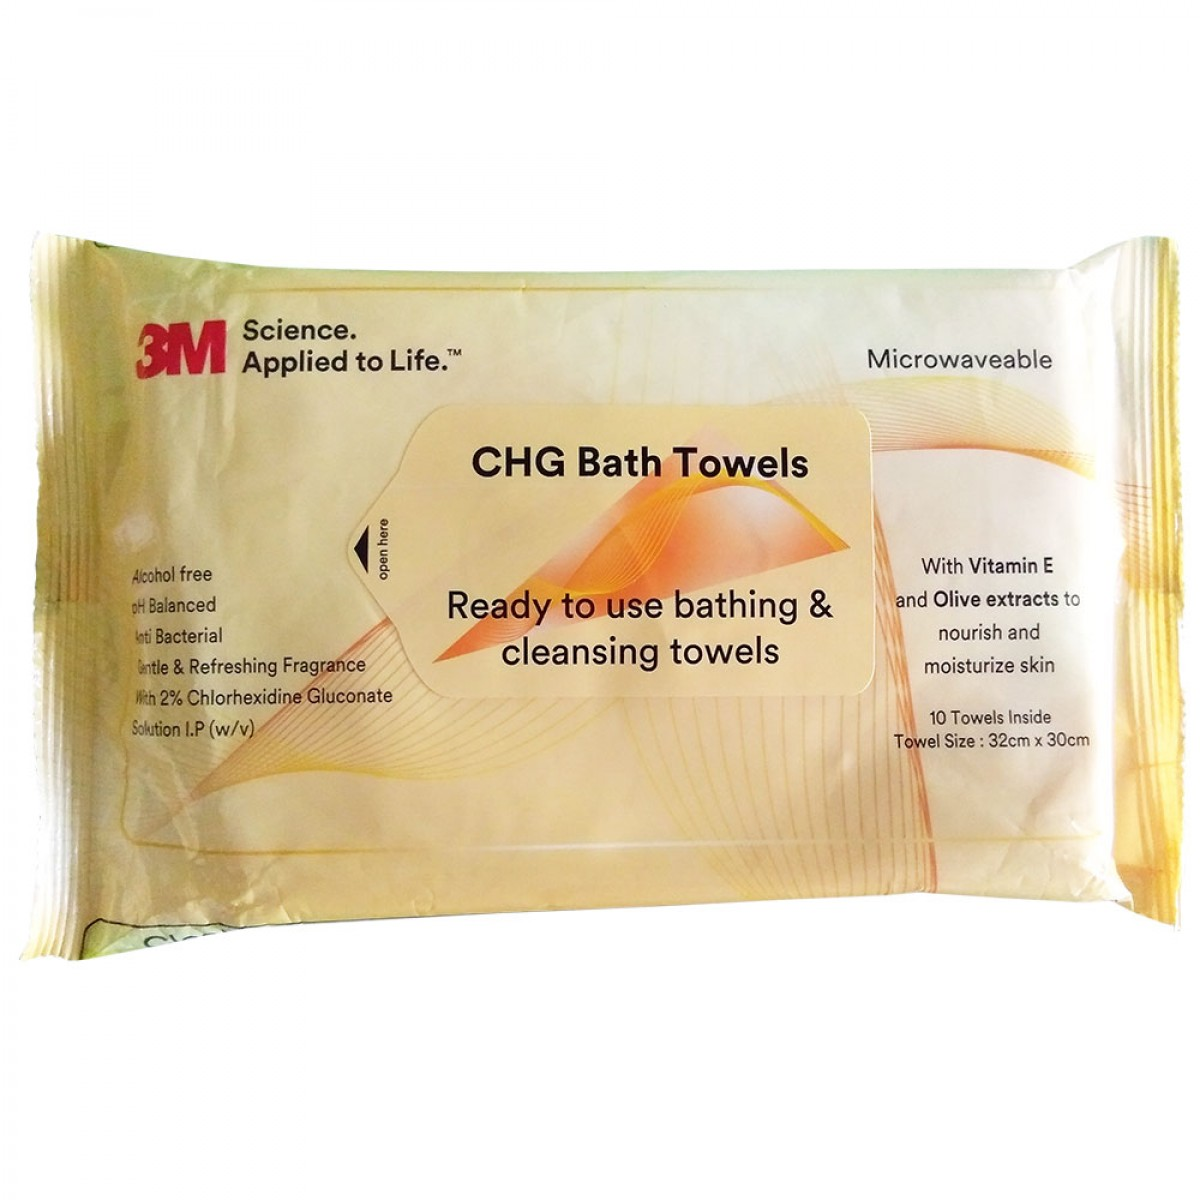 3M CHG BATH TOWELS